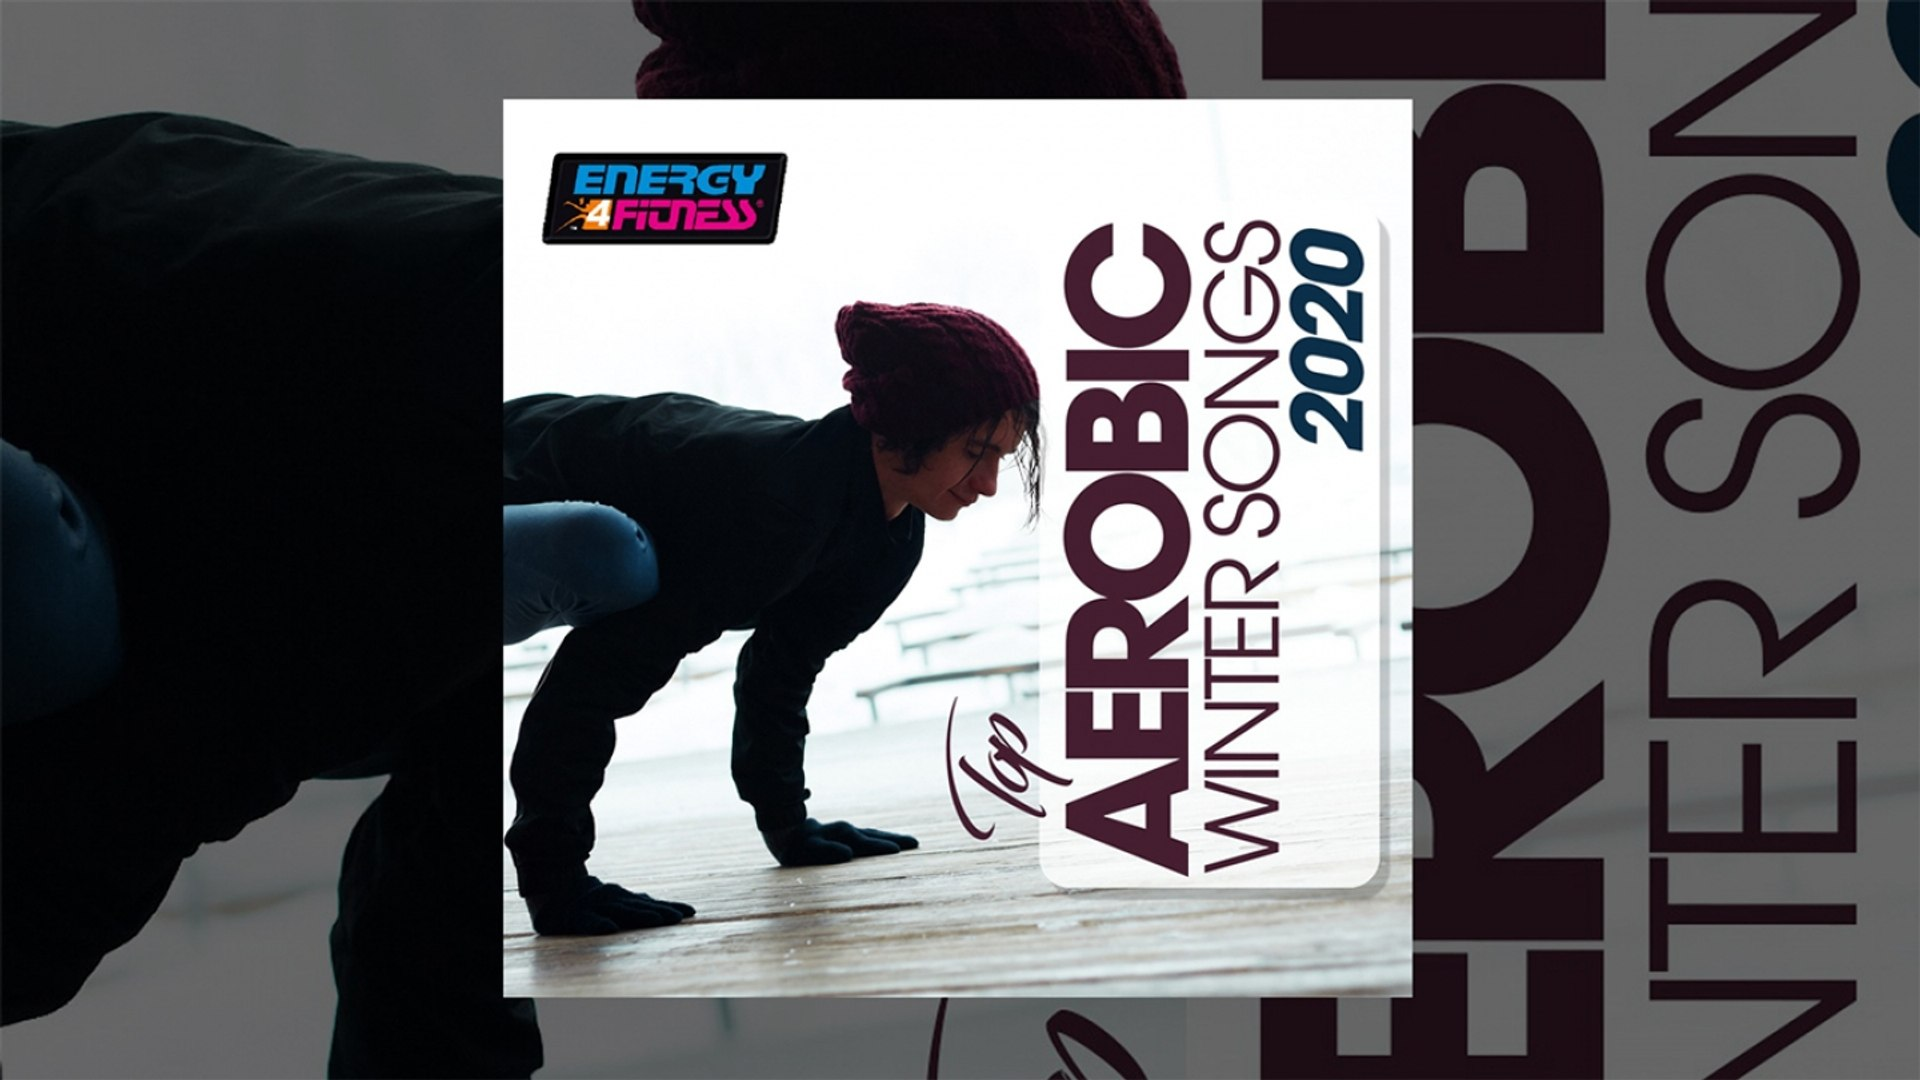 E4F - Top Aerobic Winter Songs 2020 - Fitness & Music 2020